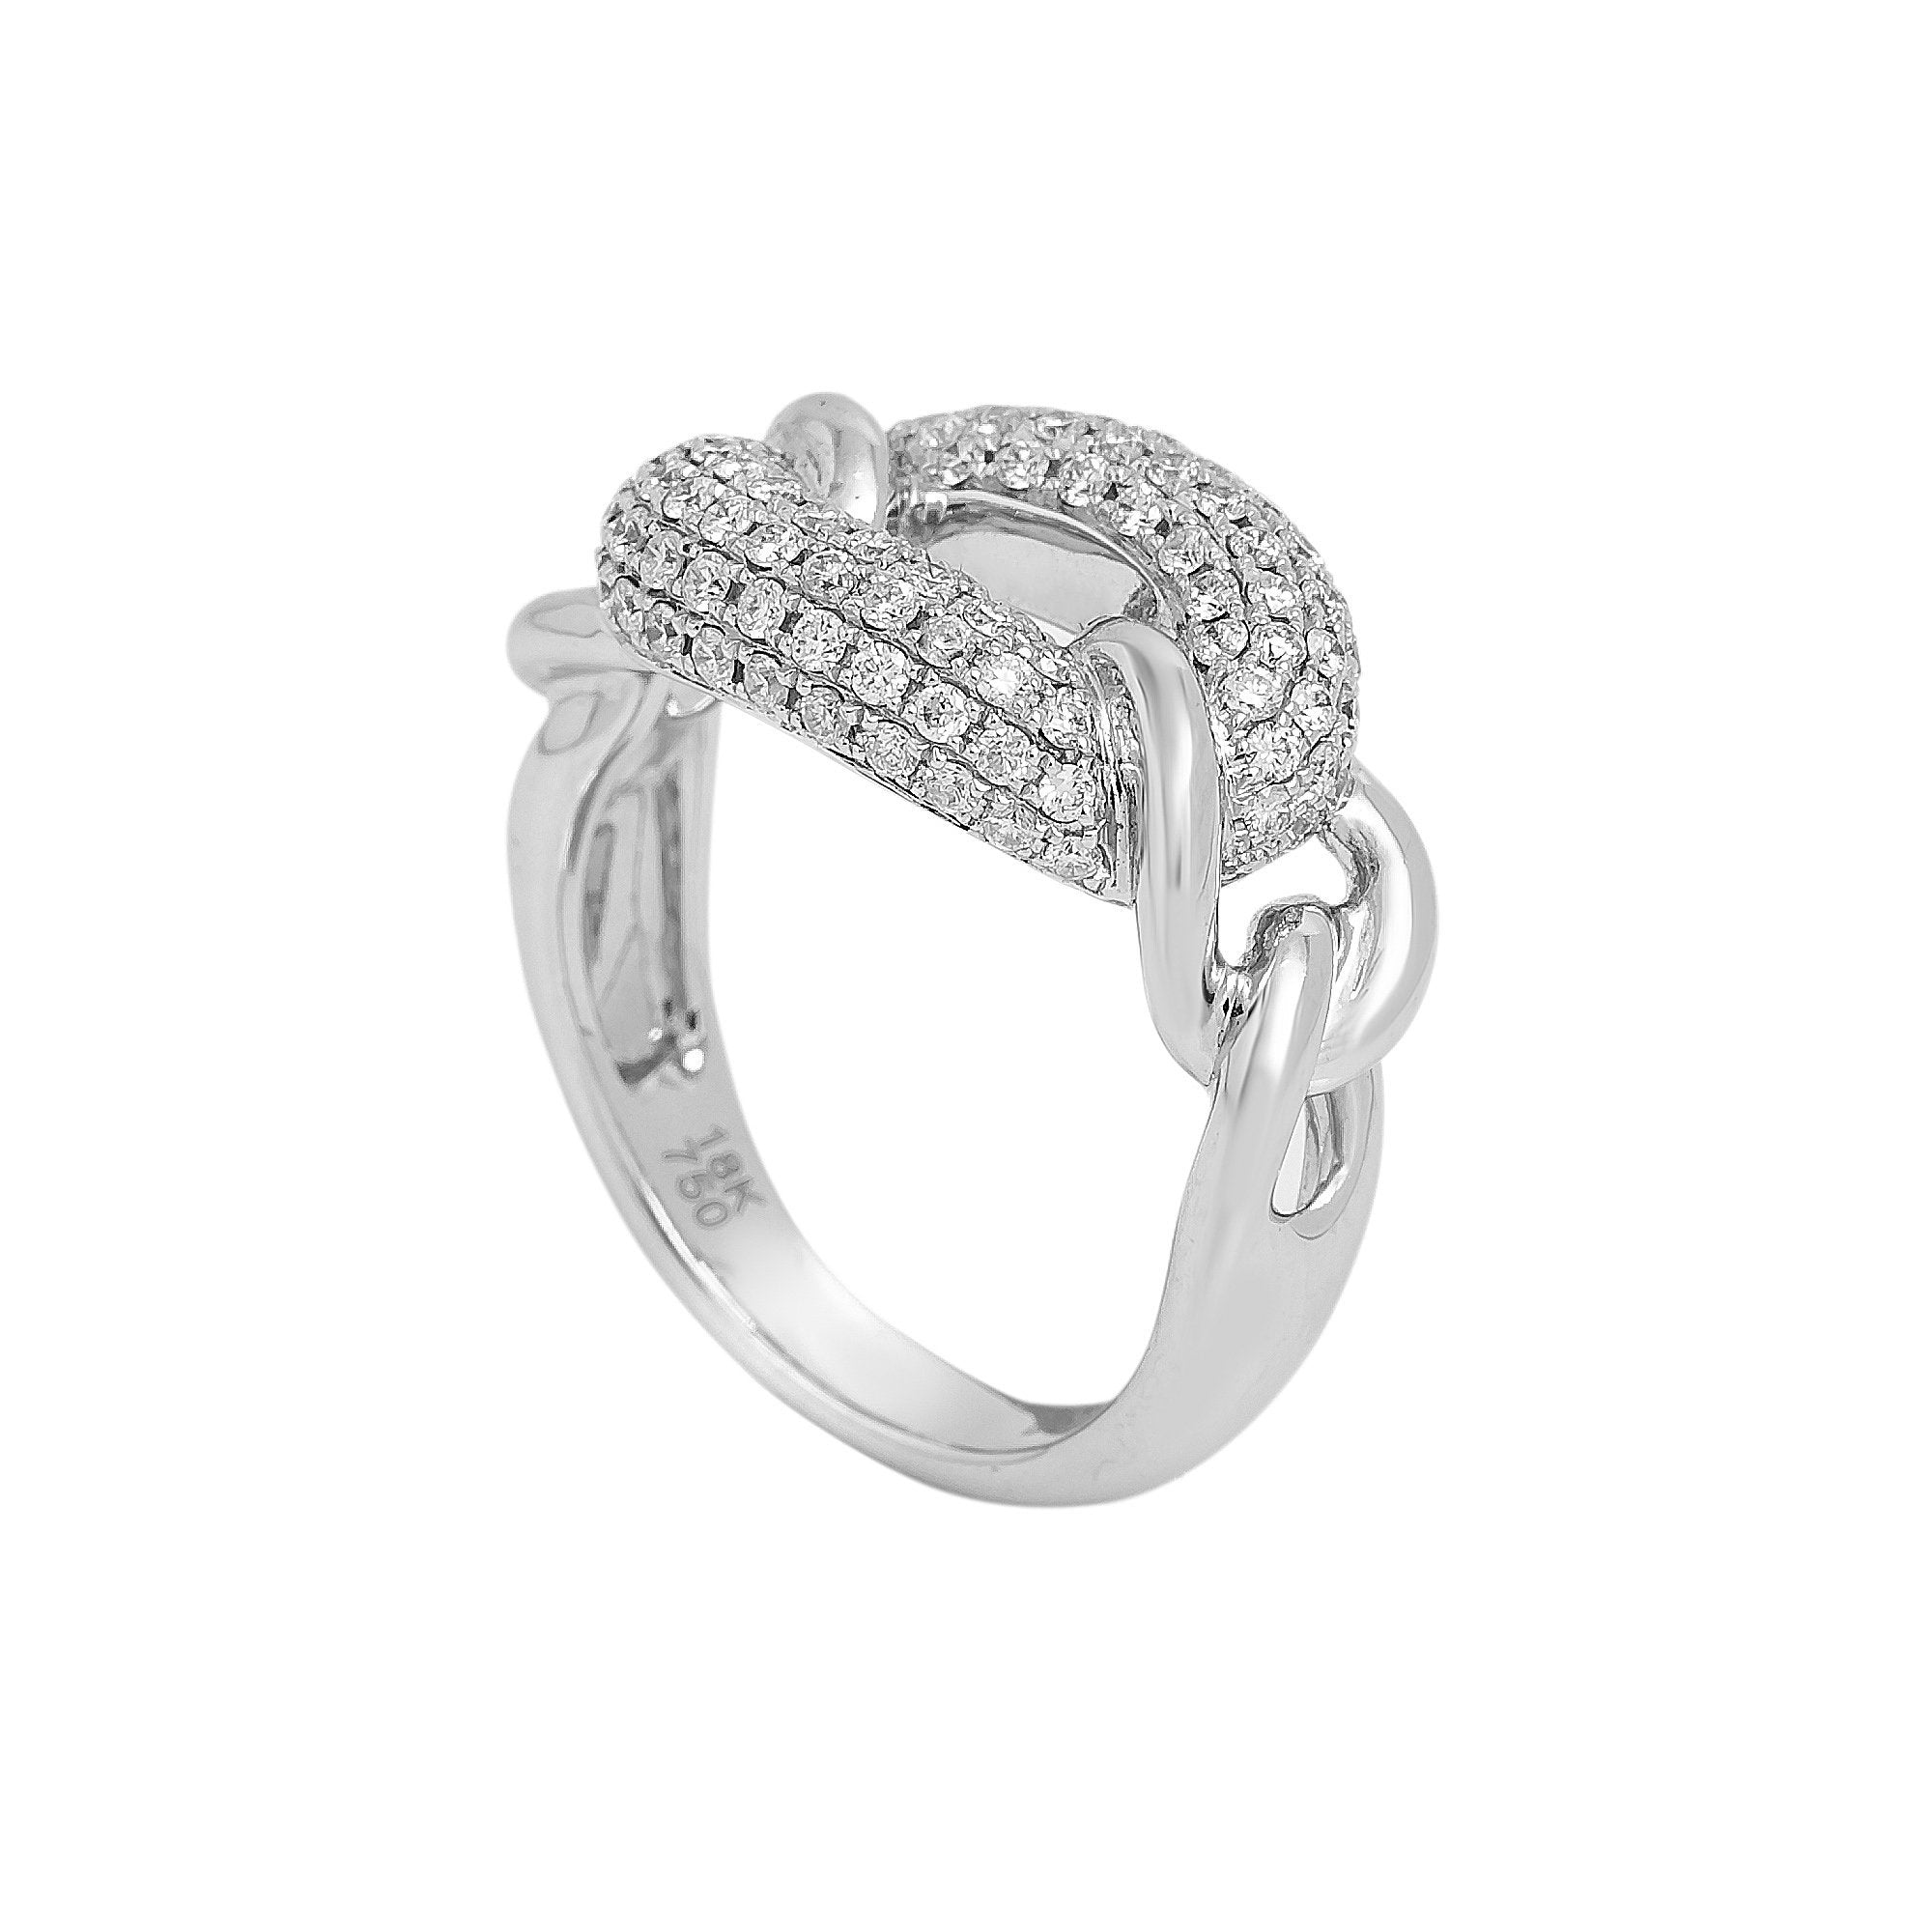 LADIES 18K WHITE GOLD HAND RING WITH 0.80 CT DIAMONDS